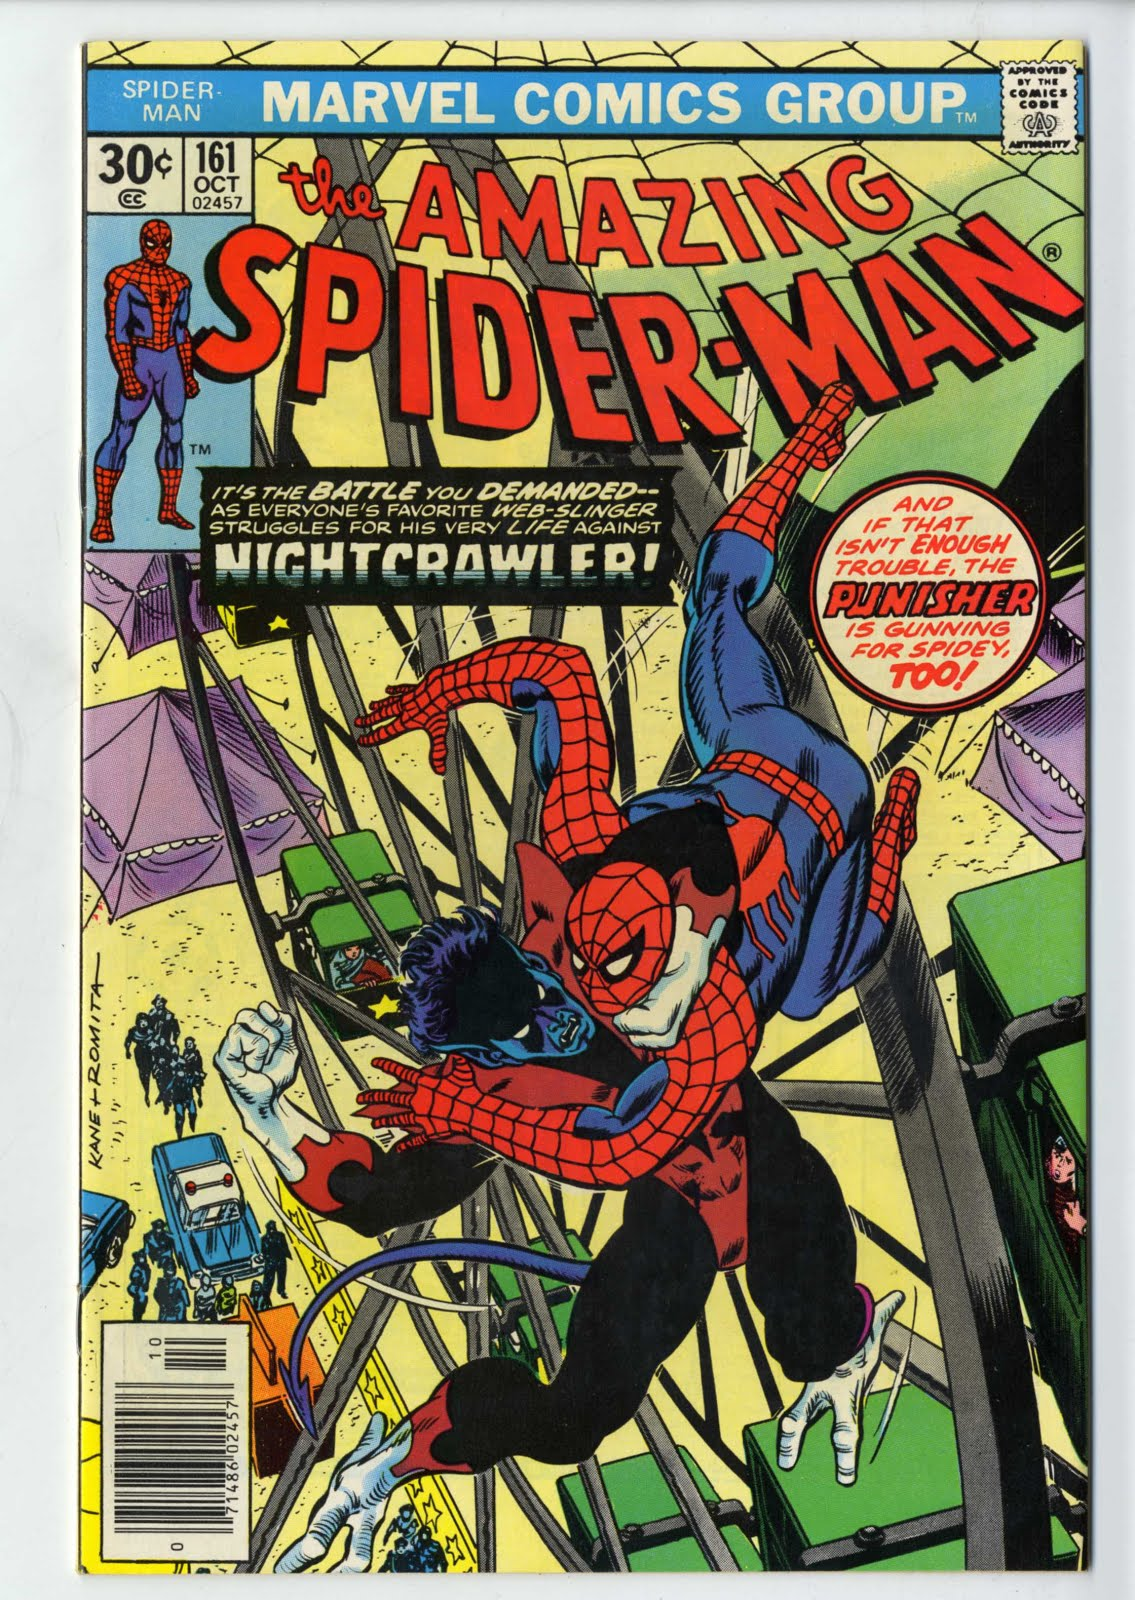 Frank Forte: Amazing Spiderman Covers-Silver Age Marvel part 2